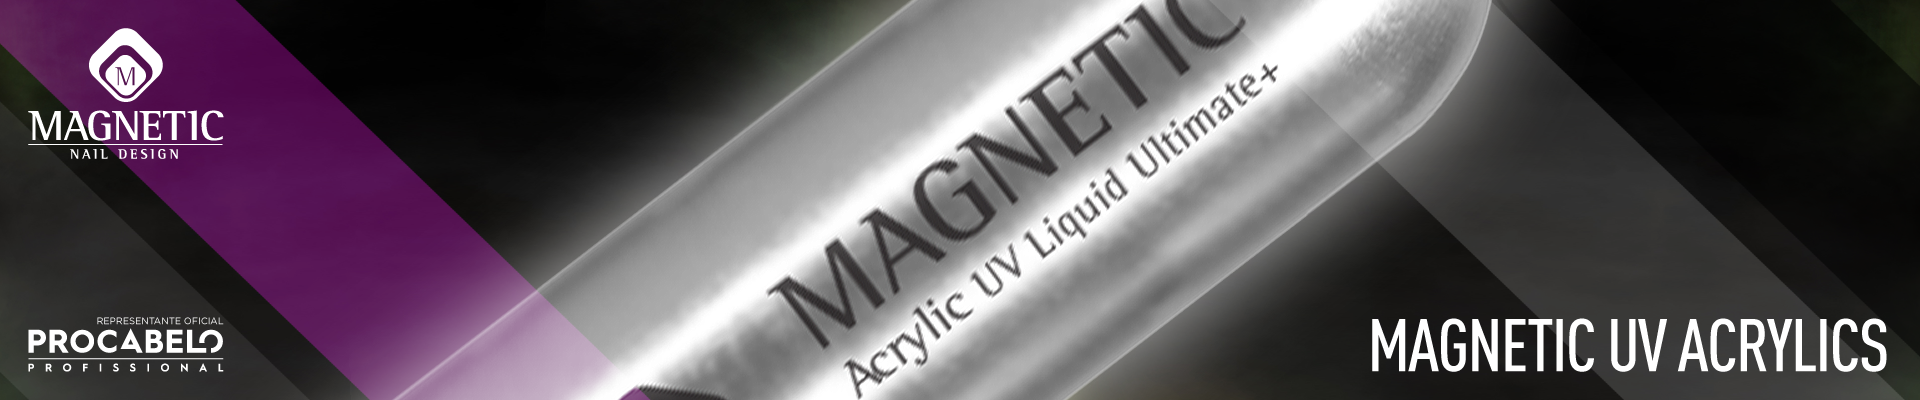 UV ACRYLICS Magnetic